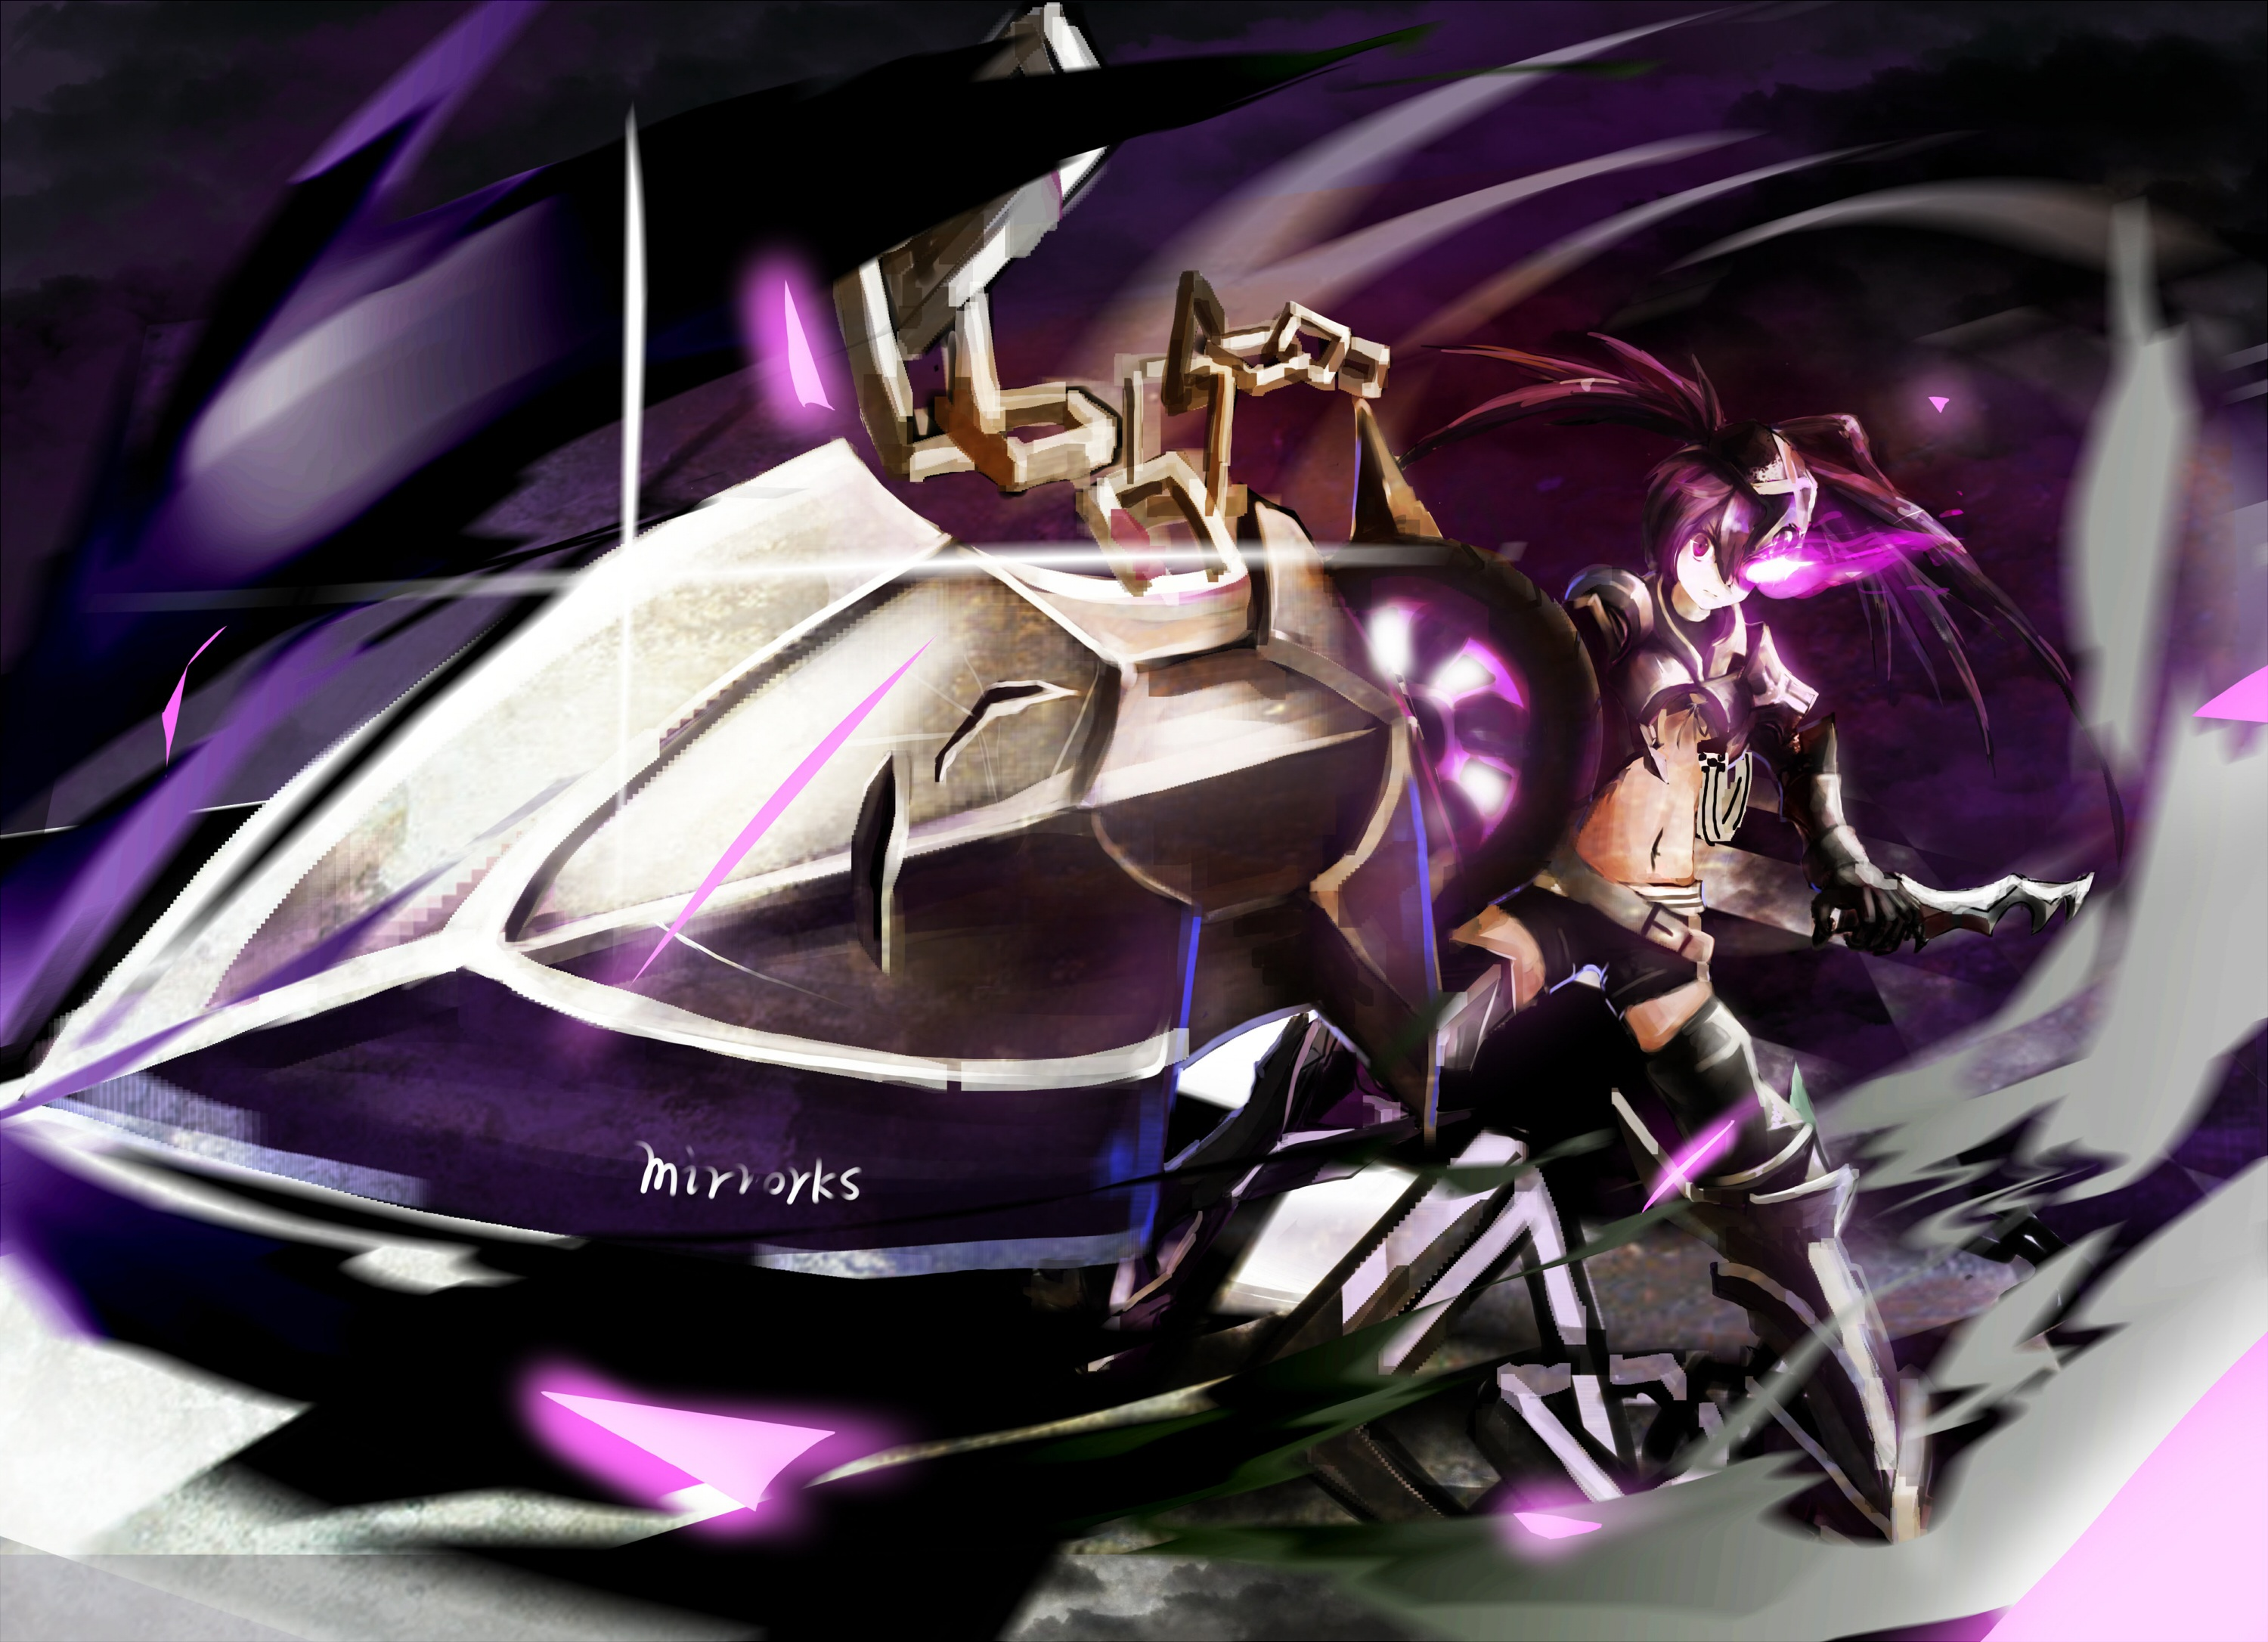 IBRS BLACKROCK SHOOTER HD Wallpaper Background Image 3000x2172